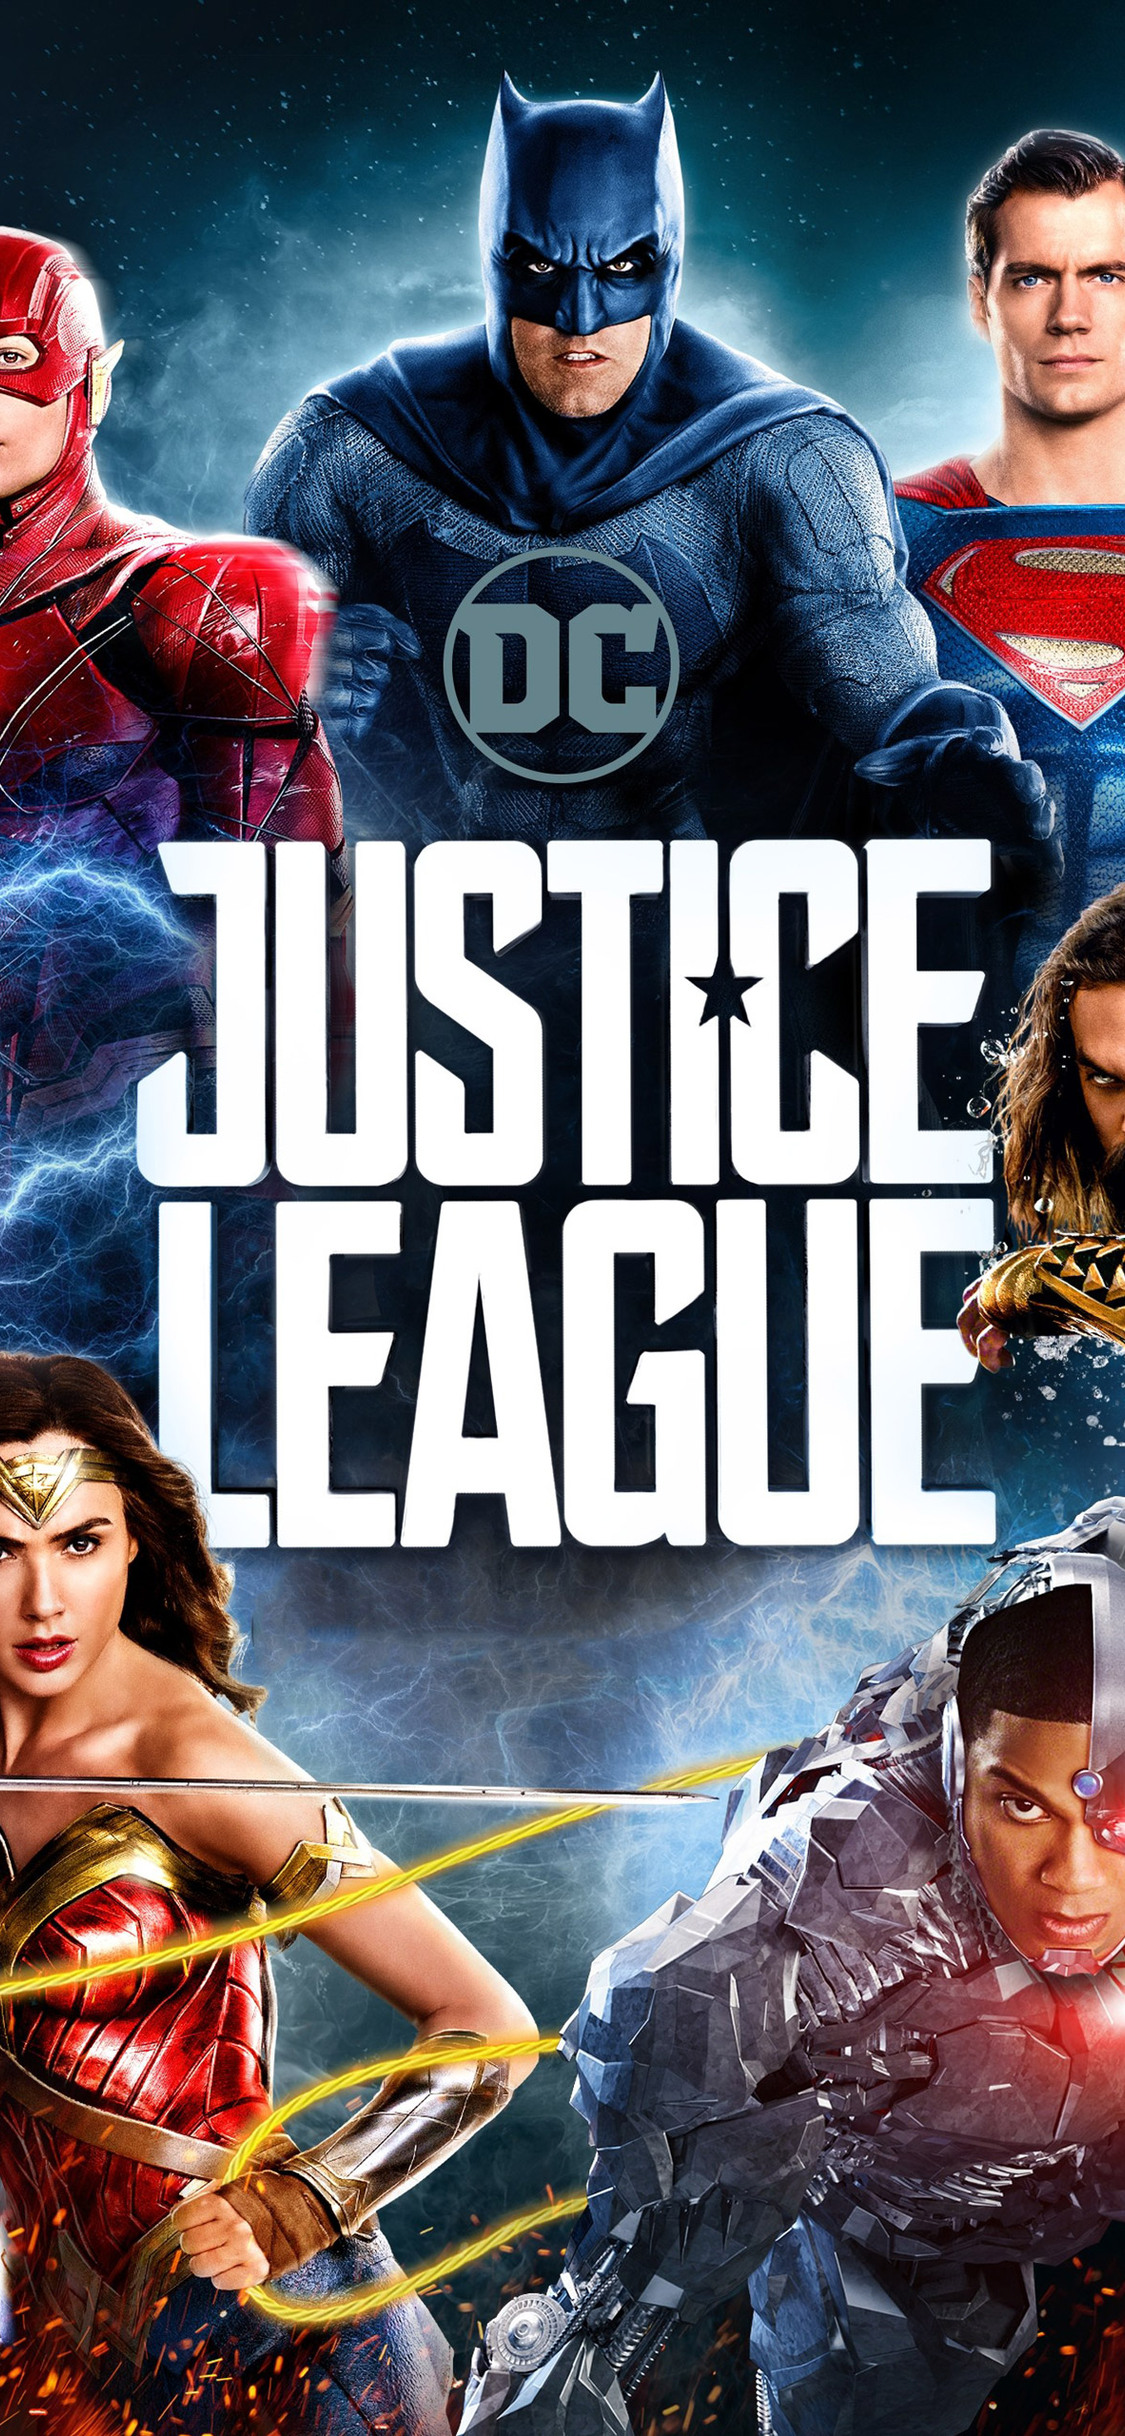 Justice League Movie Poster Hd Pc